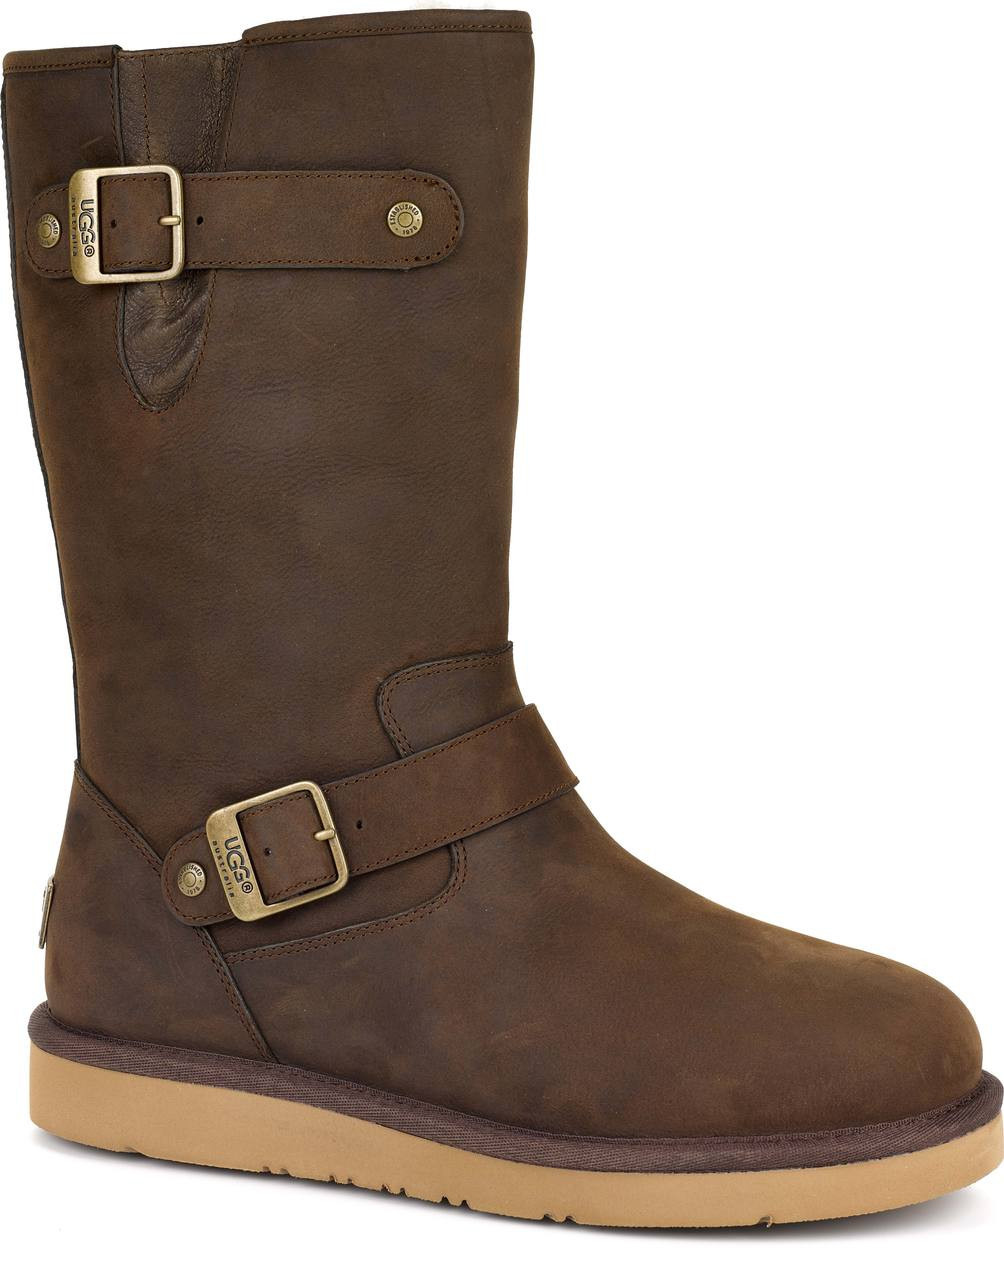 ... Boots; UGG Australia Women's Sutter (Available in Multiple Colors).  Black. Black; Toast